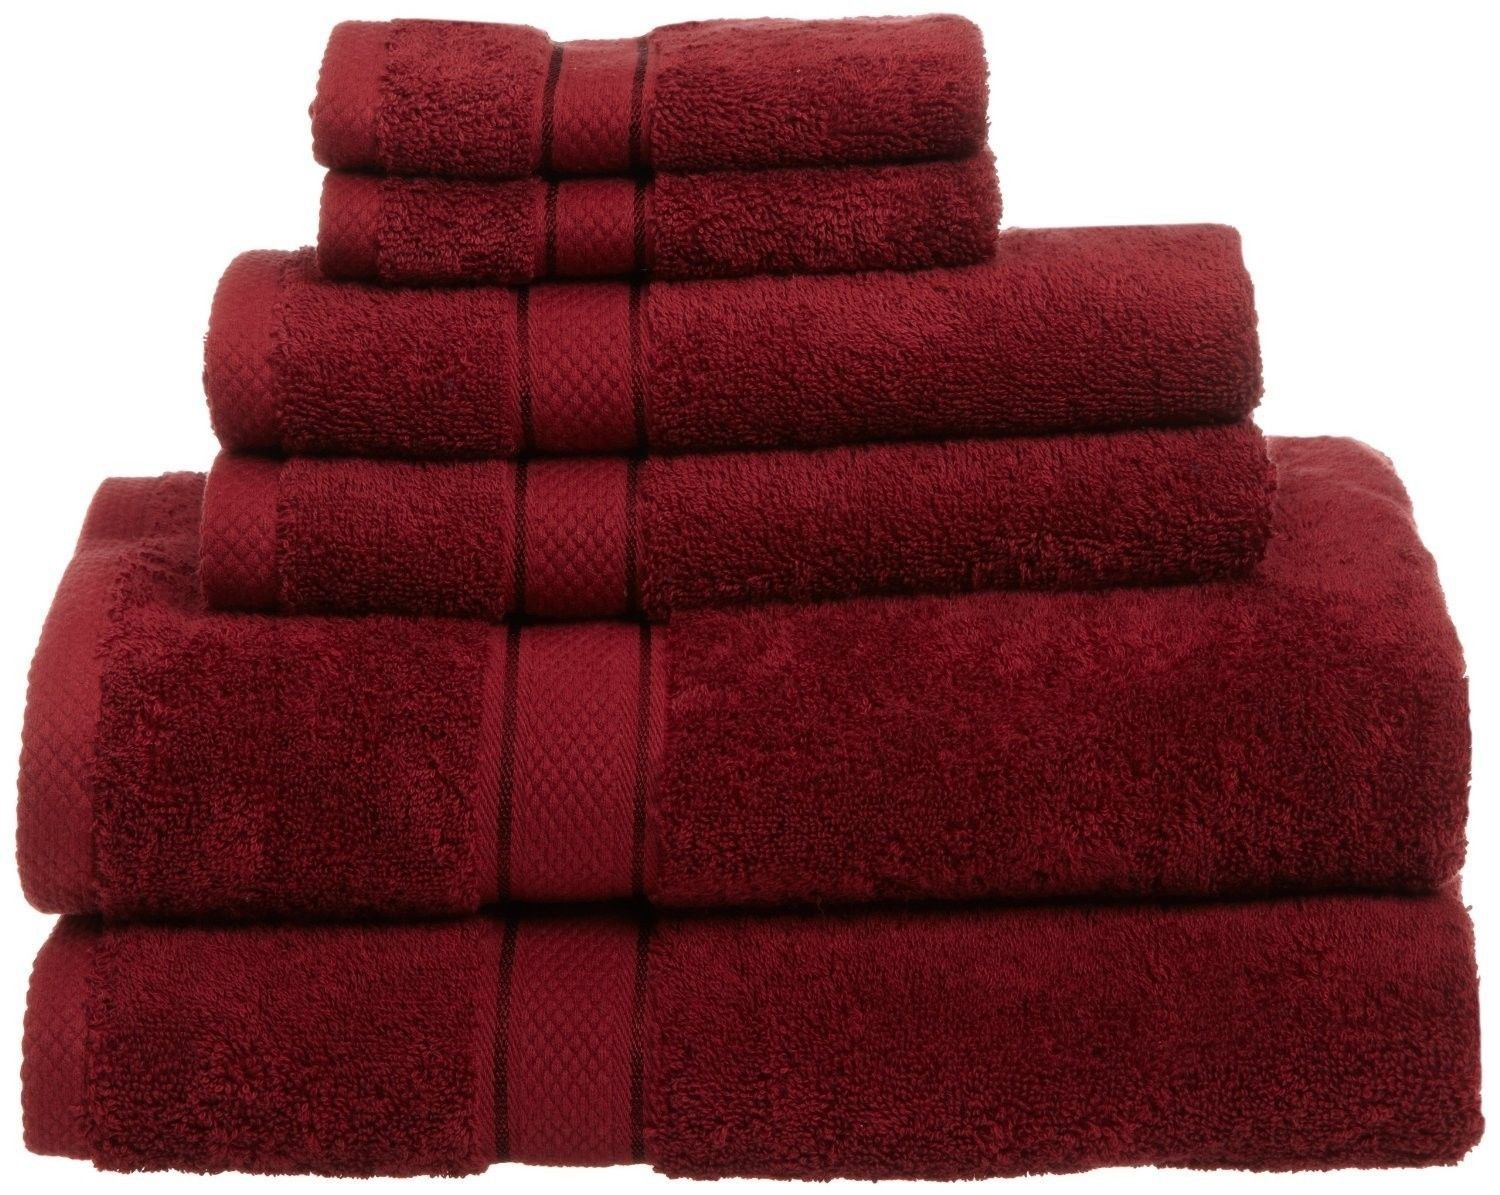 Amazon com  Cranberry NEW 6 Piece 100  Egyptian Cotton 725 Gram Bath Towel  Towels Set Different Color  Home   Kitchen. Amazon com  Cranberry NEW 6 Piece 100  Egyptian Cotton 725 Gram